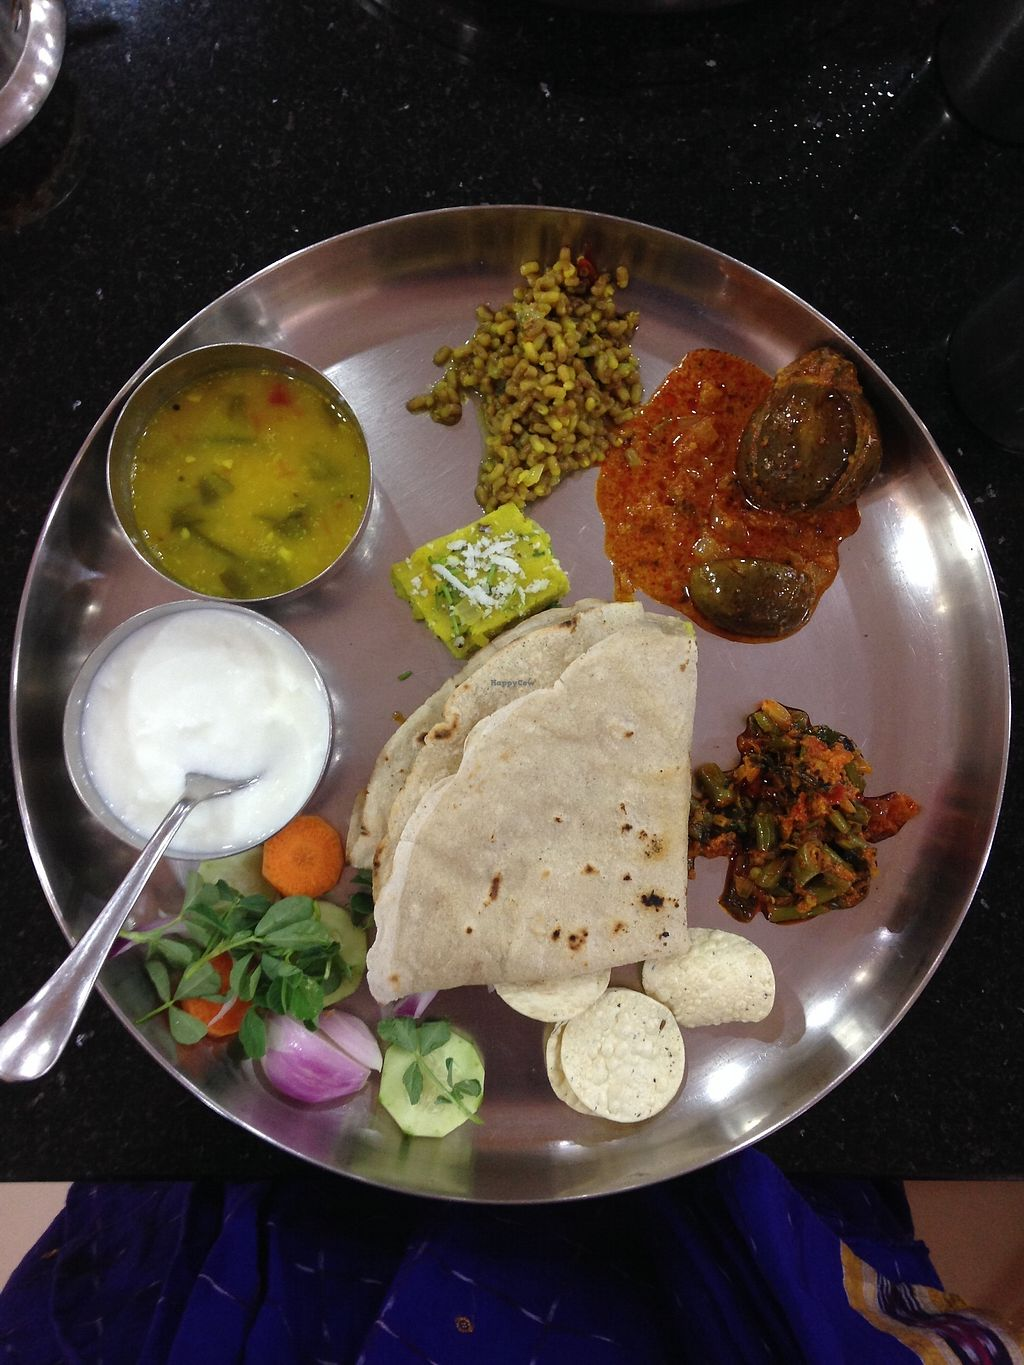 """Photo of Nalpak Rotti Zone  by <a href=""""/members/profile/LobkeBrasseur"""">LobkeBrasseur</a> <br/>Thali with jowar roti <br/> March 21, 2018  - <a href='/contact/abuse/image/115080/373585'>Report</a>"""